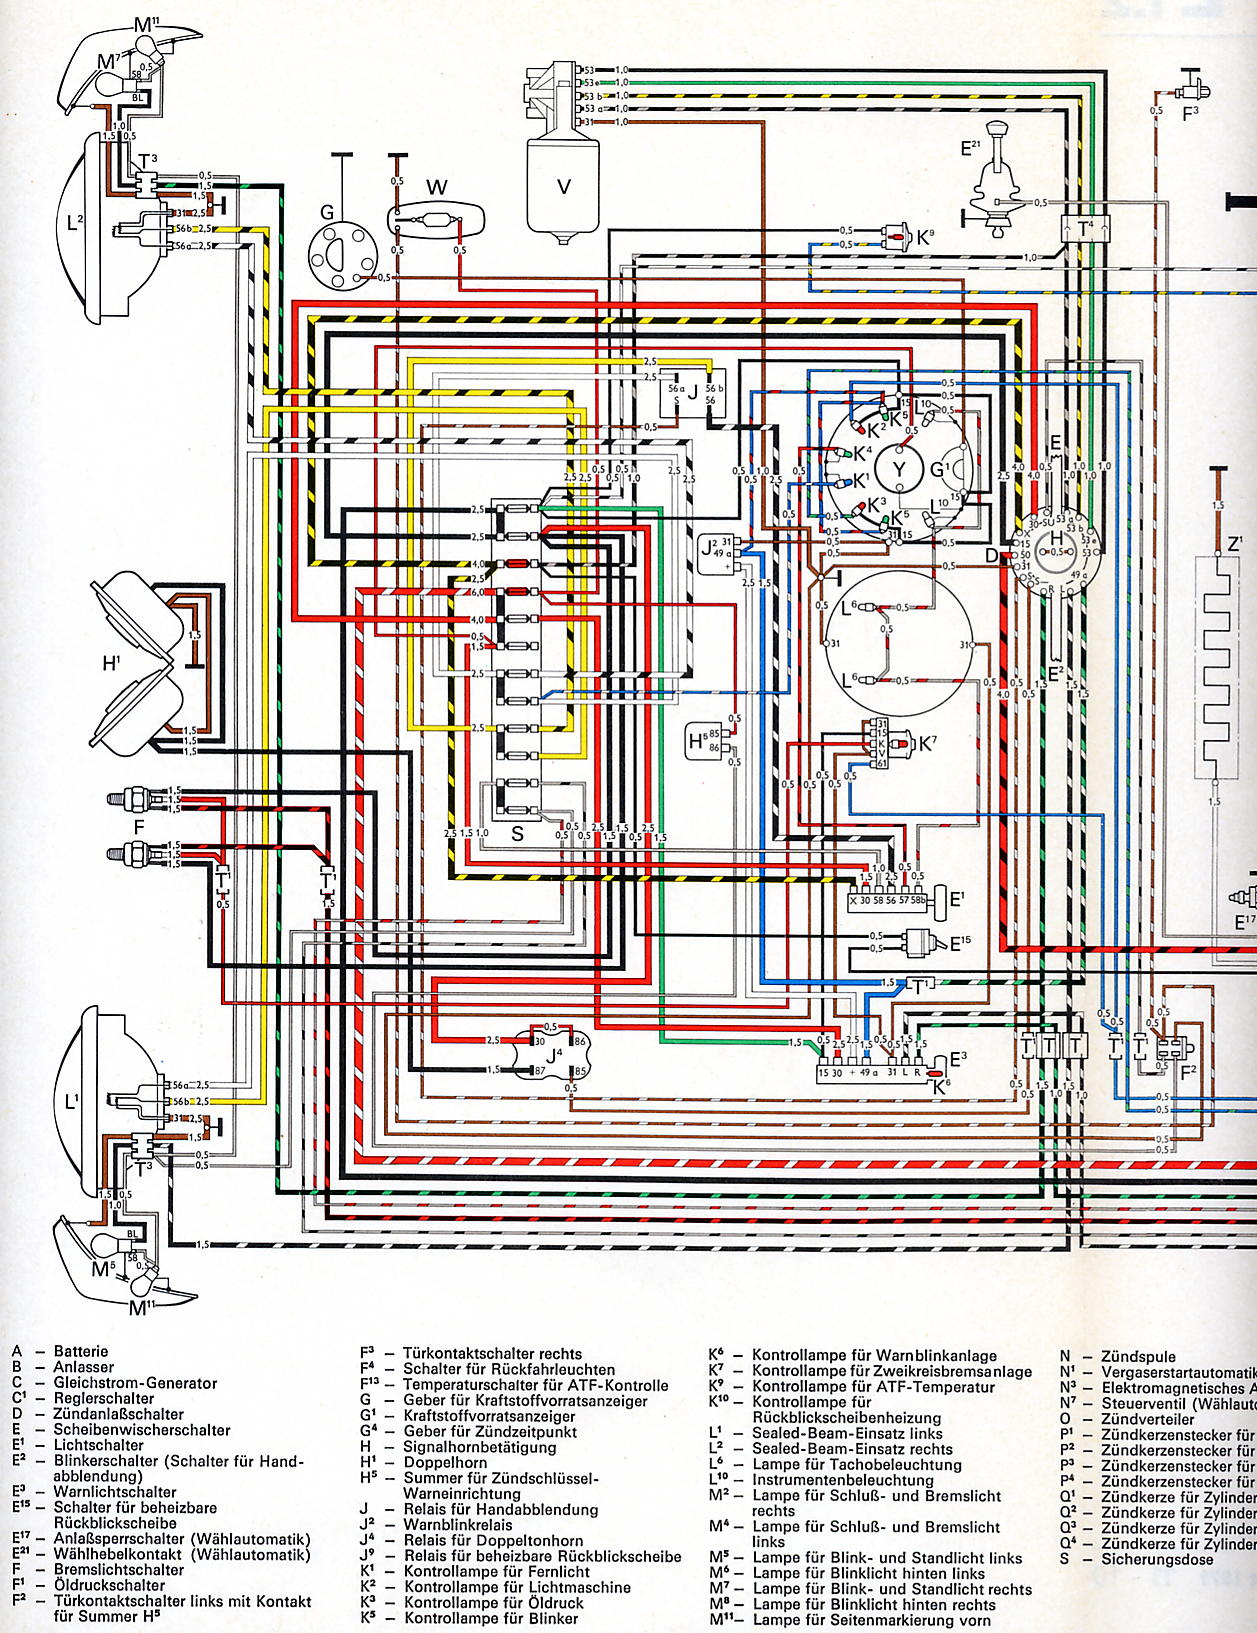 Karmann_Ghia_USA_from_August_1971 1 wiring diagram shoptalkforums com Samsung A3 2016 at eliteediting.co